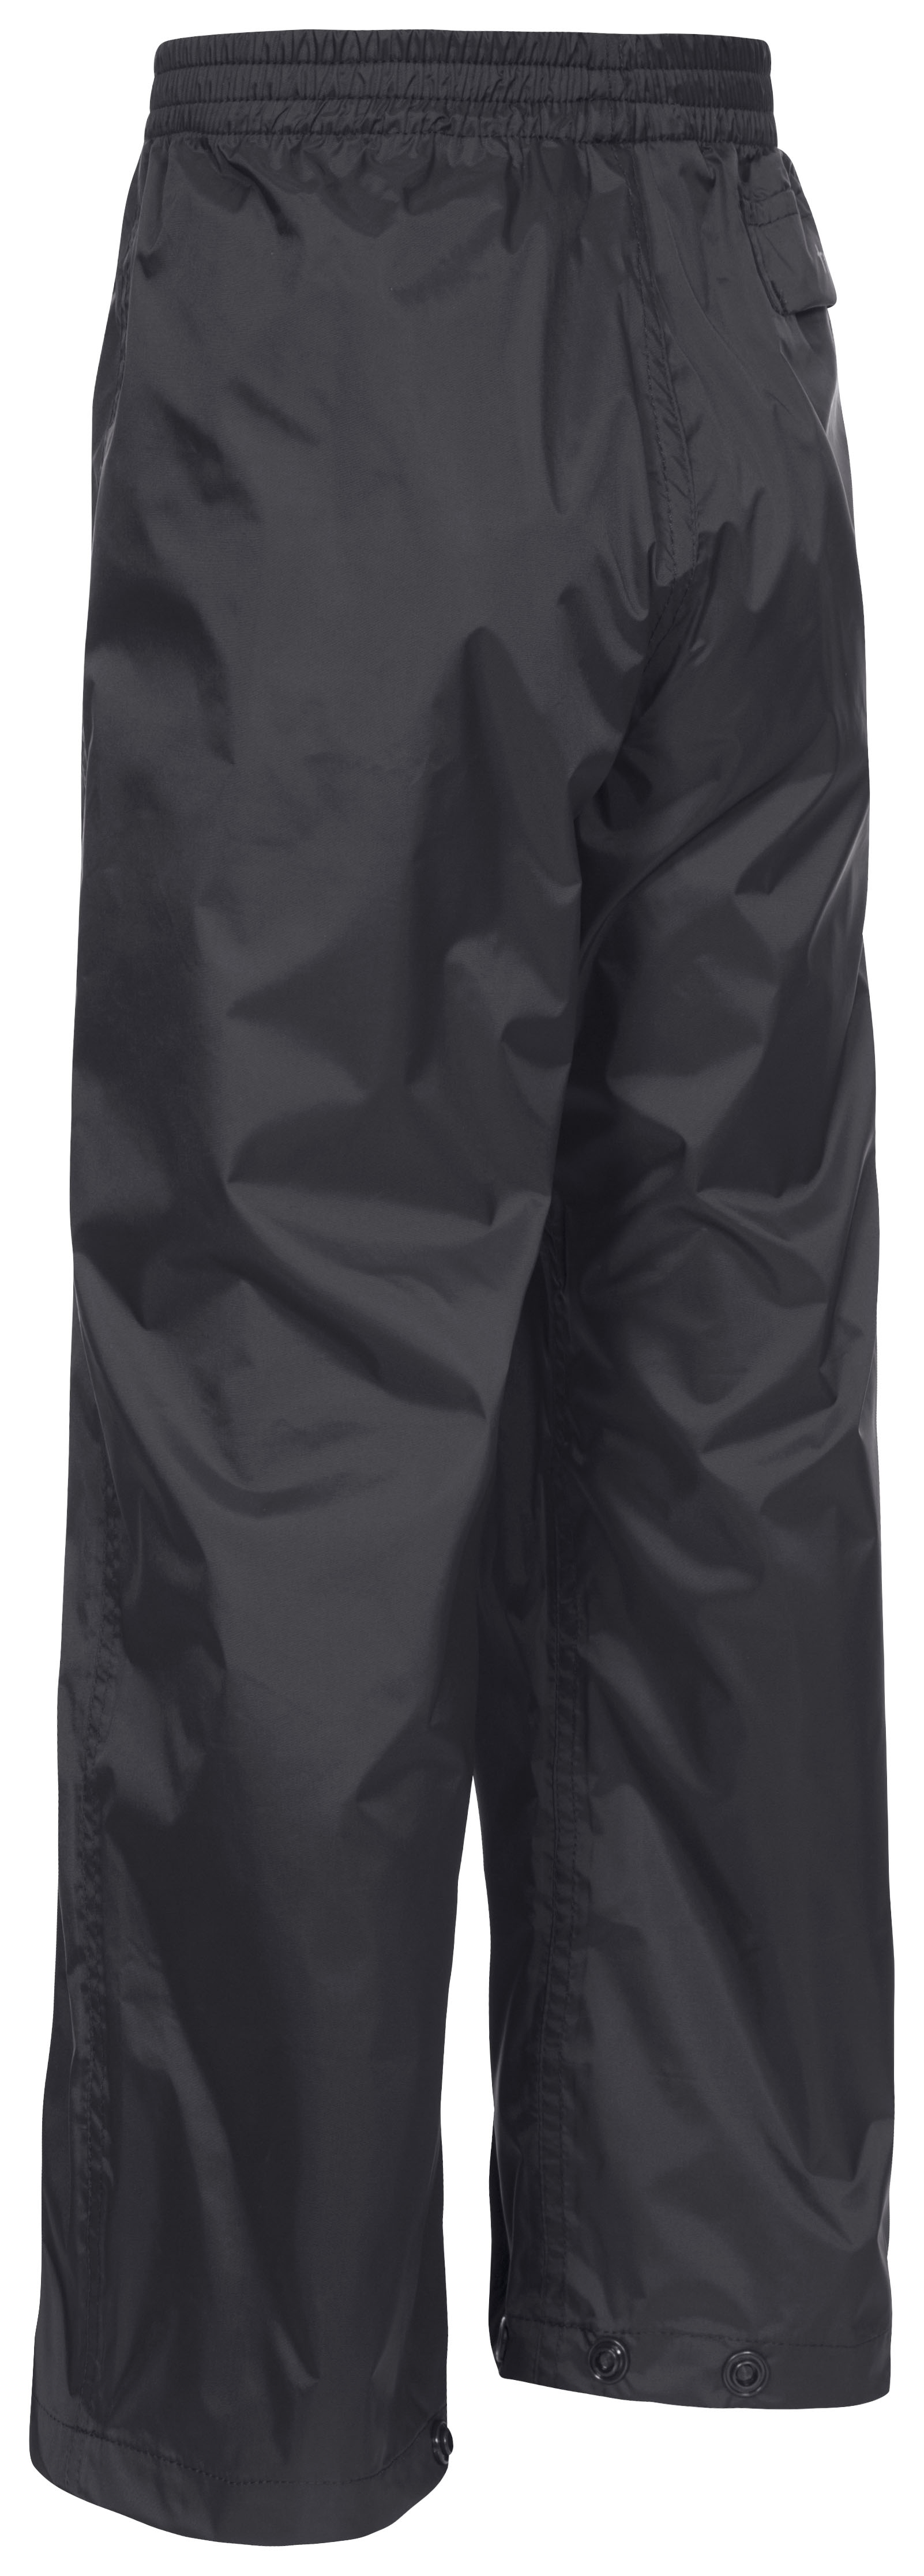 Trespass-Mens-Womens-Waterproof-Trousers-Packaway-Breathable-Qikpac thumbnail 2